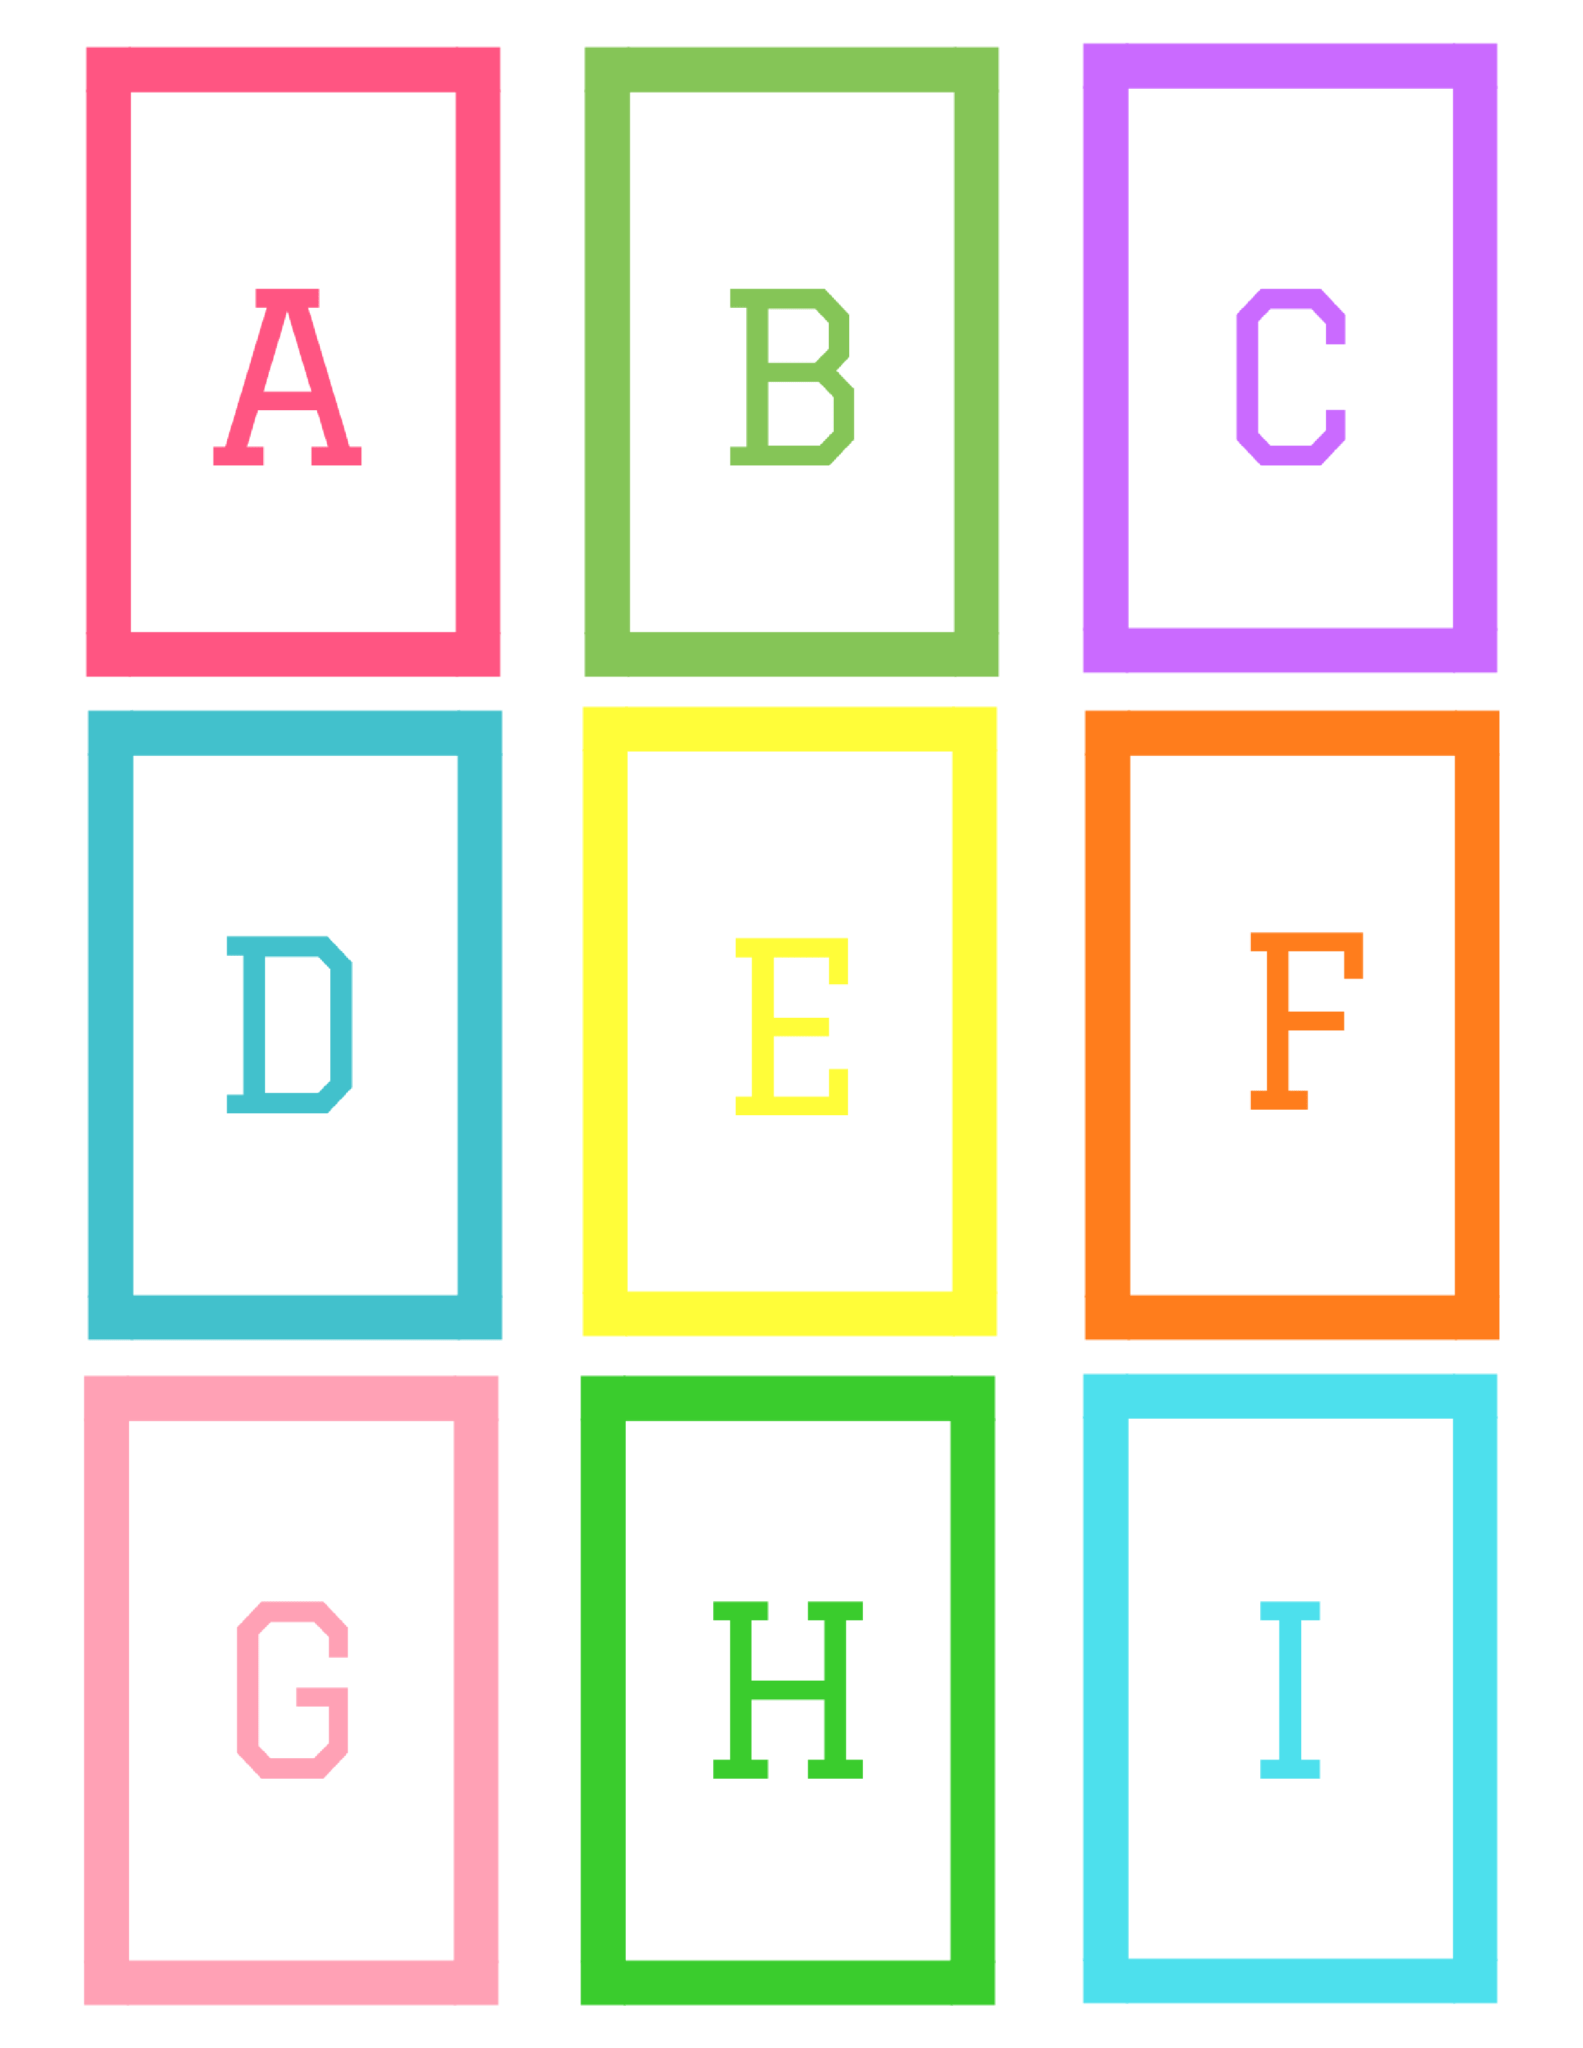 picture about Abc Flash Cards Free Printable identify ABC Flashcards: Cost-free Printable - Uncomplicated Mother Analyze